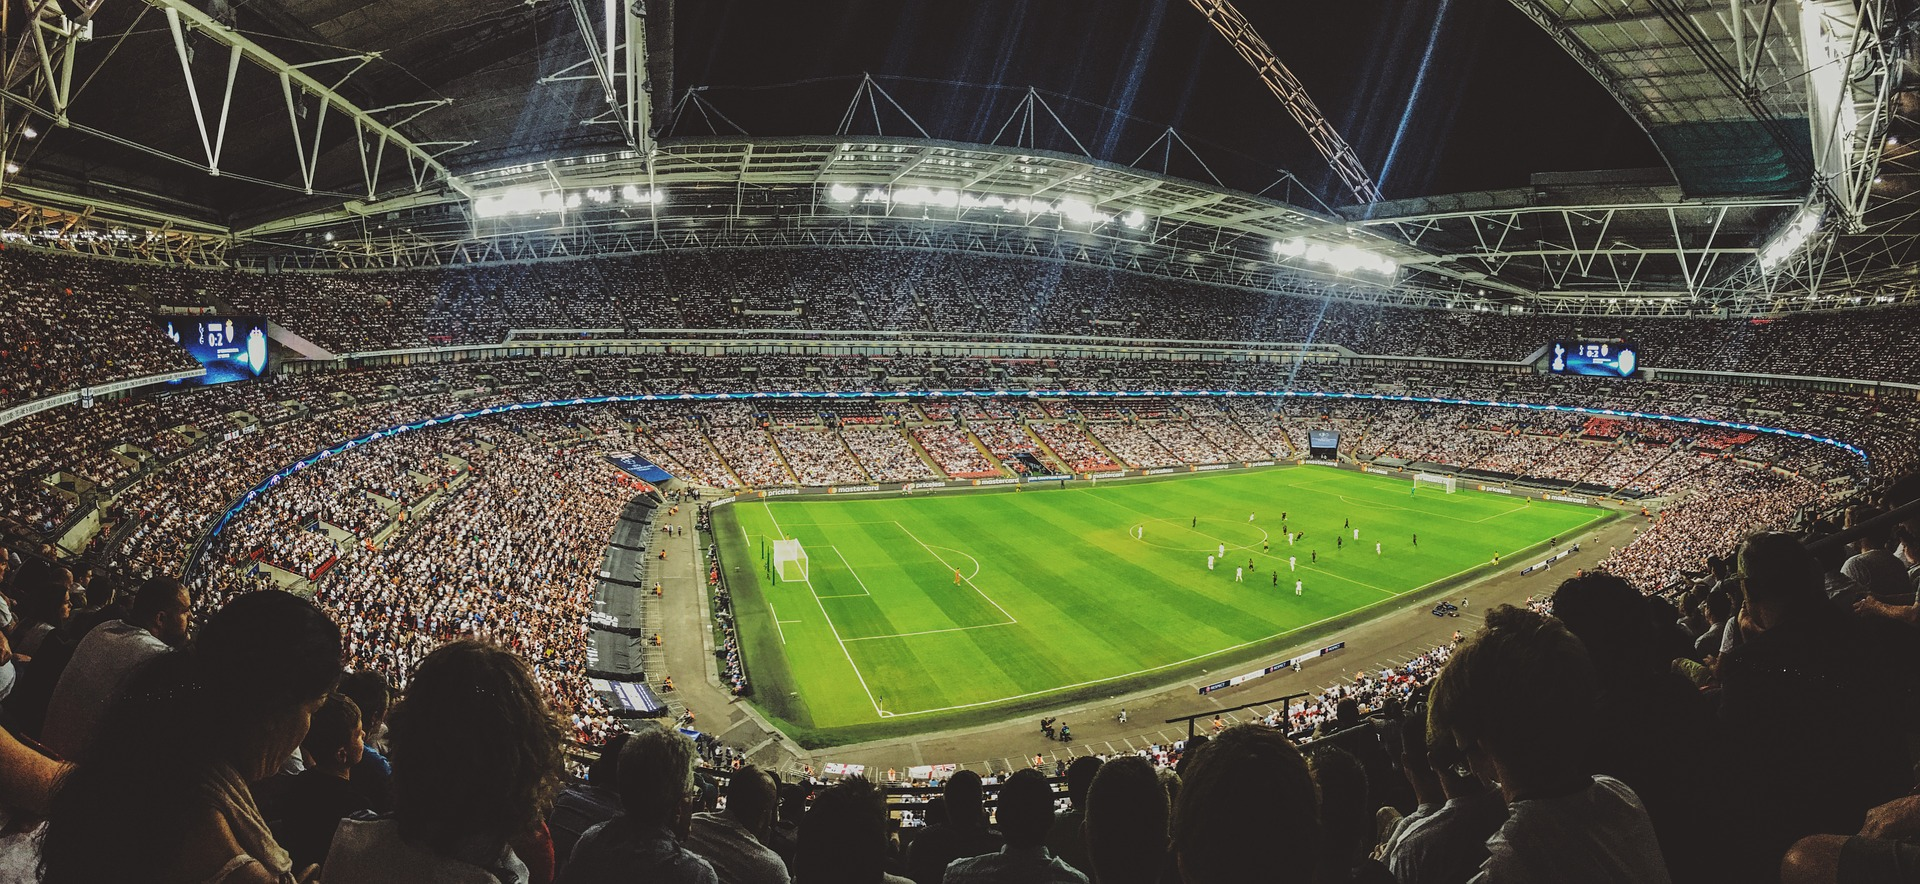 How to calculate the Arbitrage winnings in a soccer match.